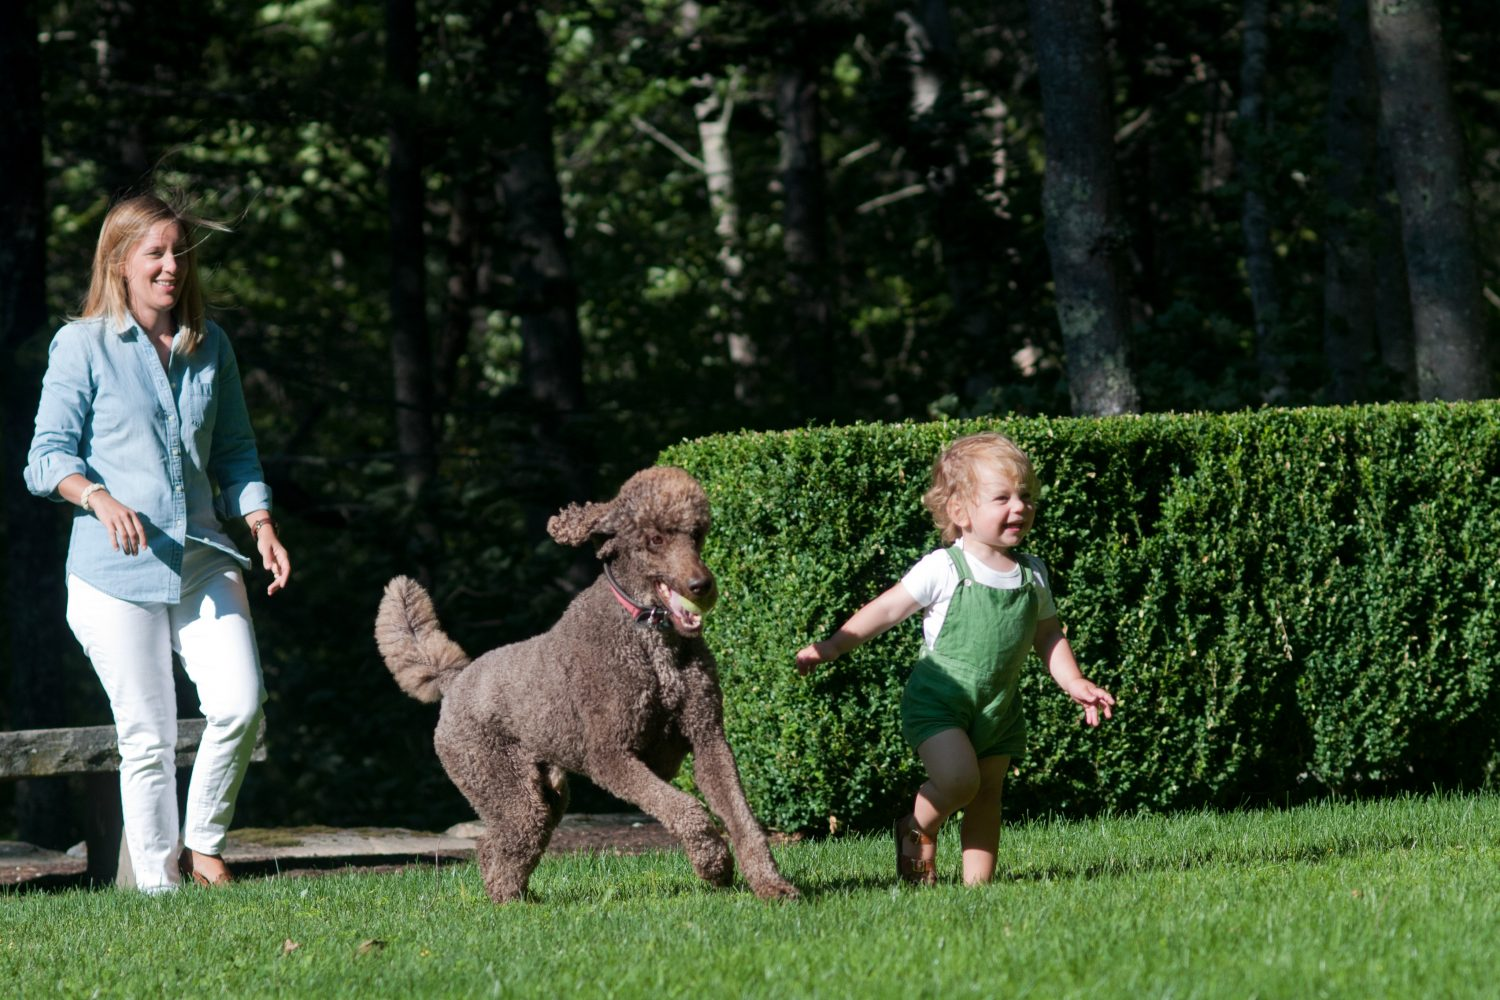 Little boy running with standard poodle in the lawn